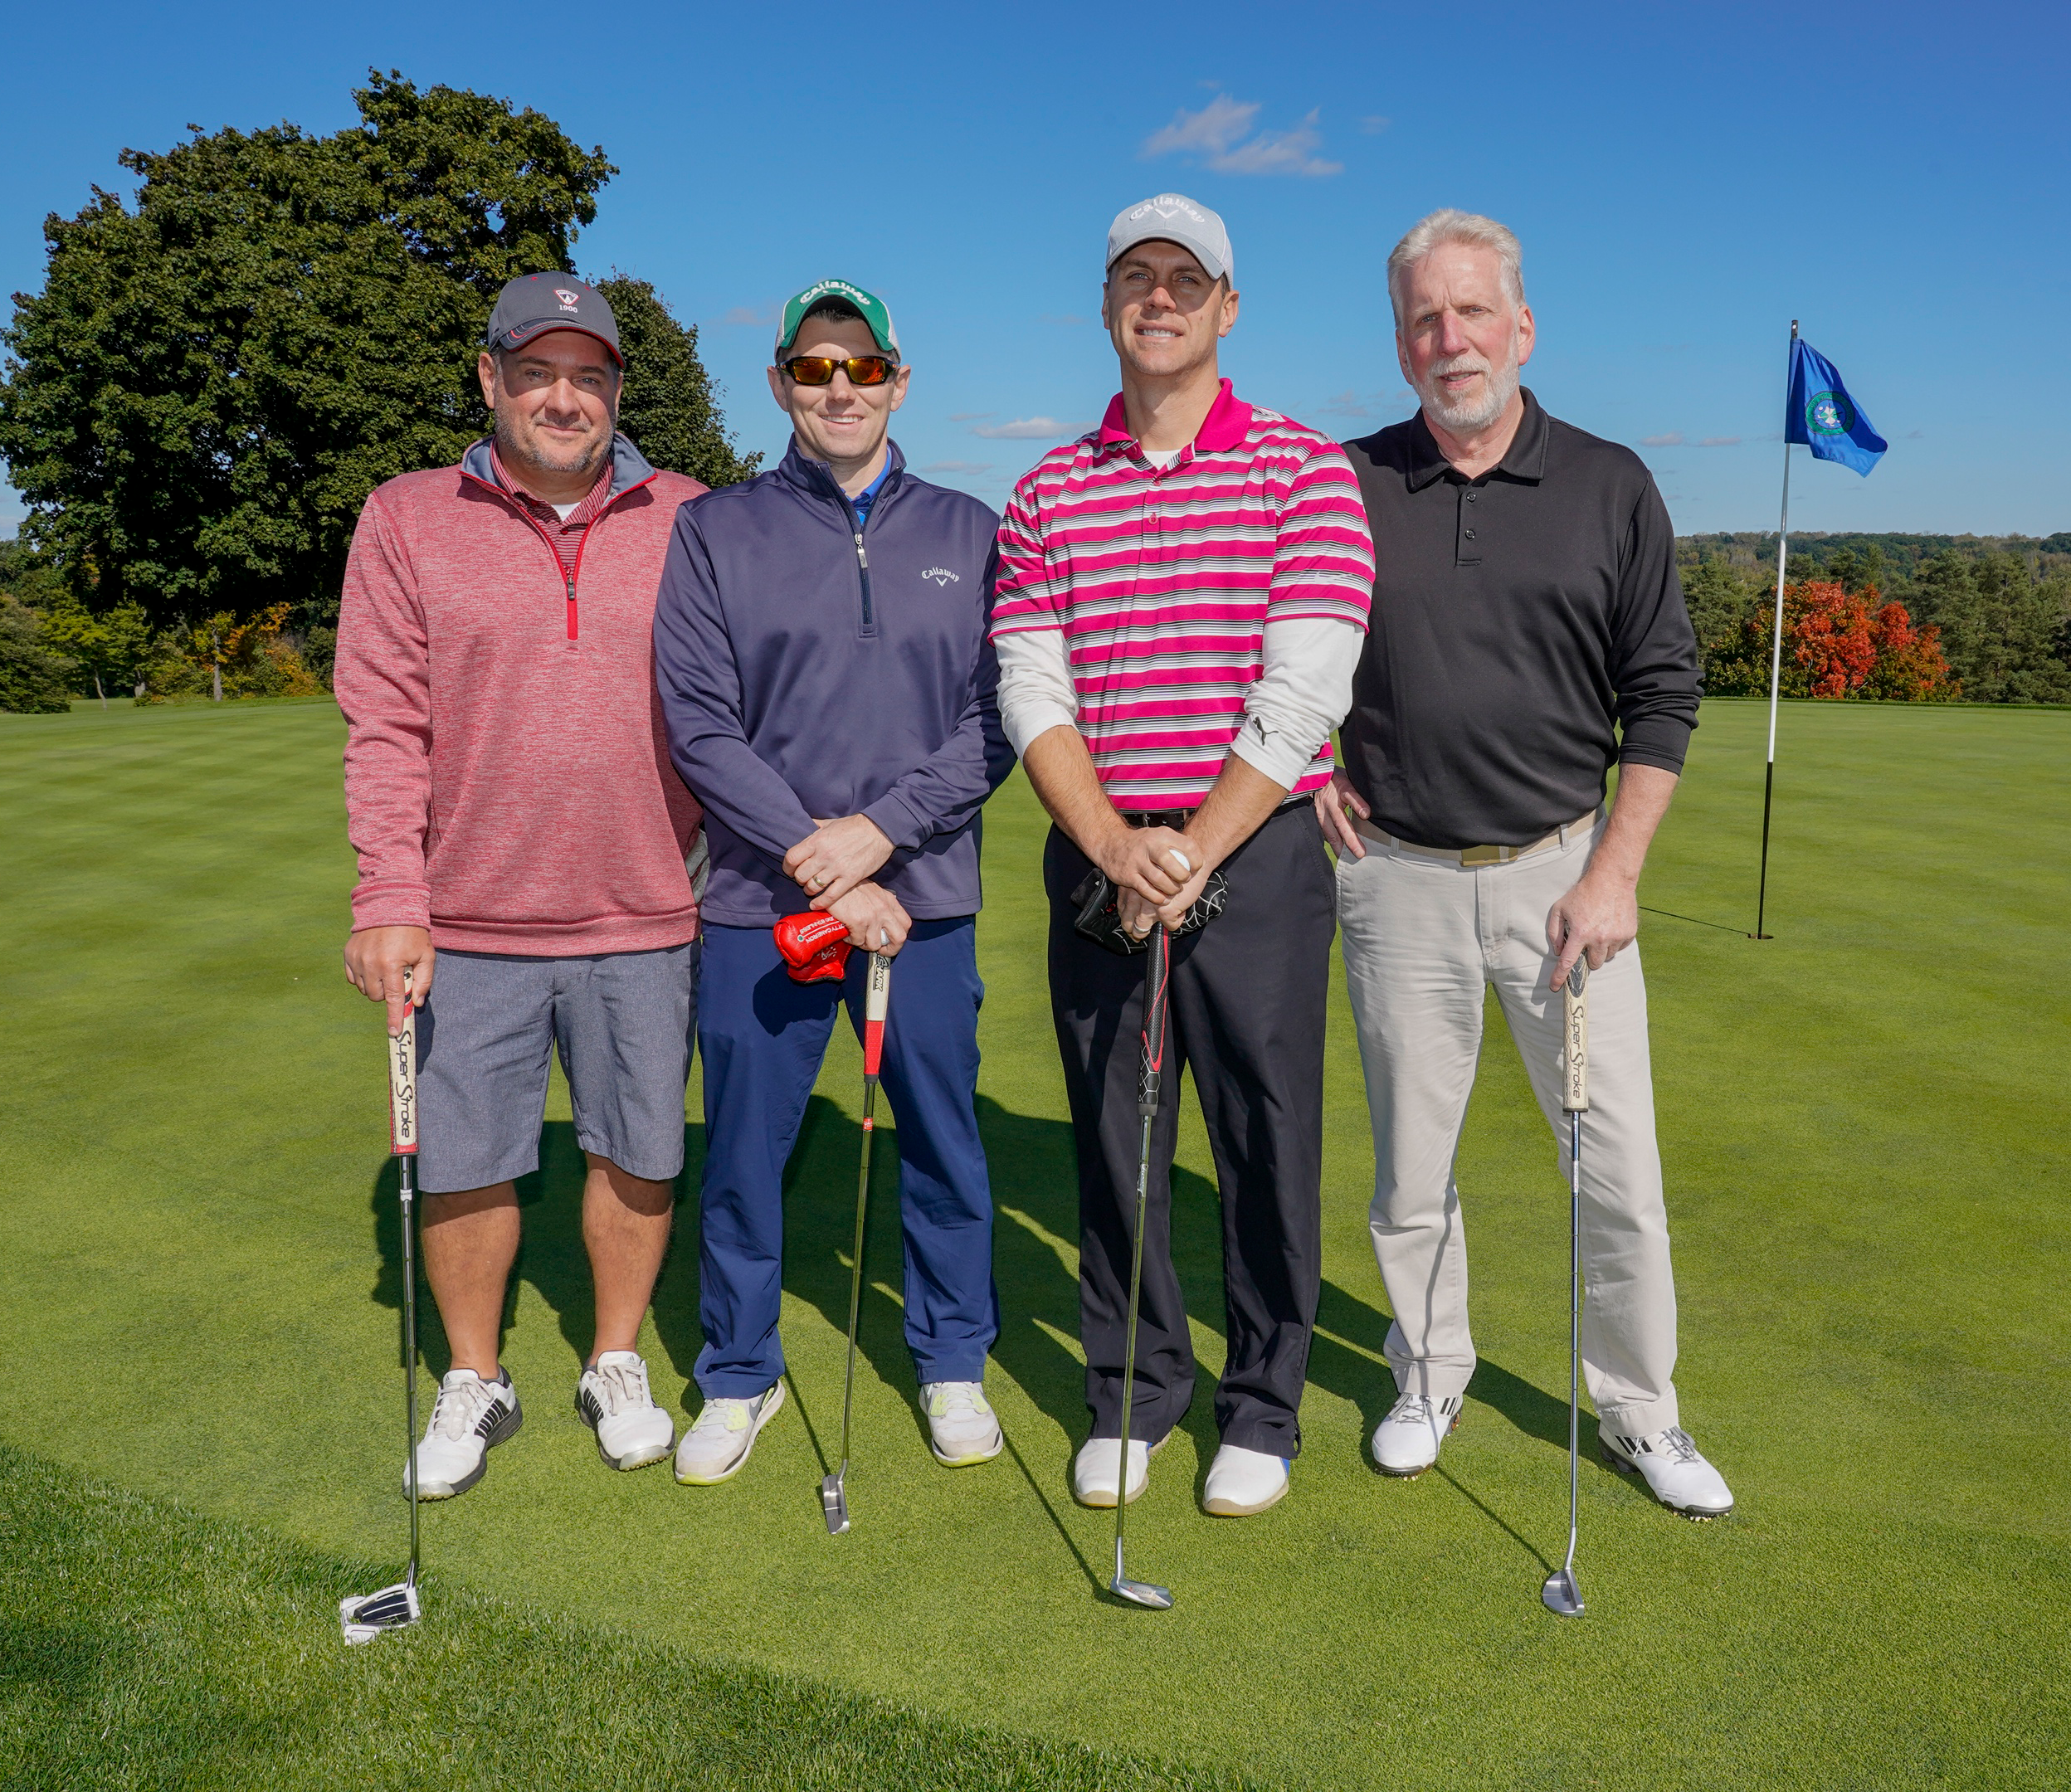 Four men wearing hats stand on a golf course. One holds a golf club.